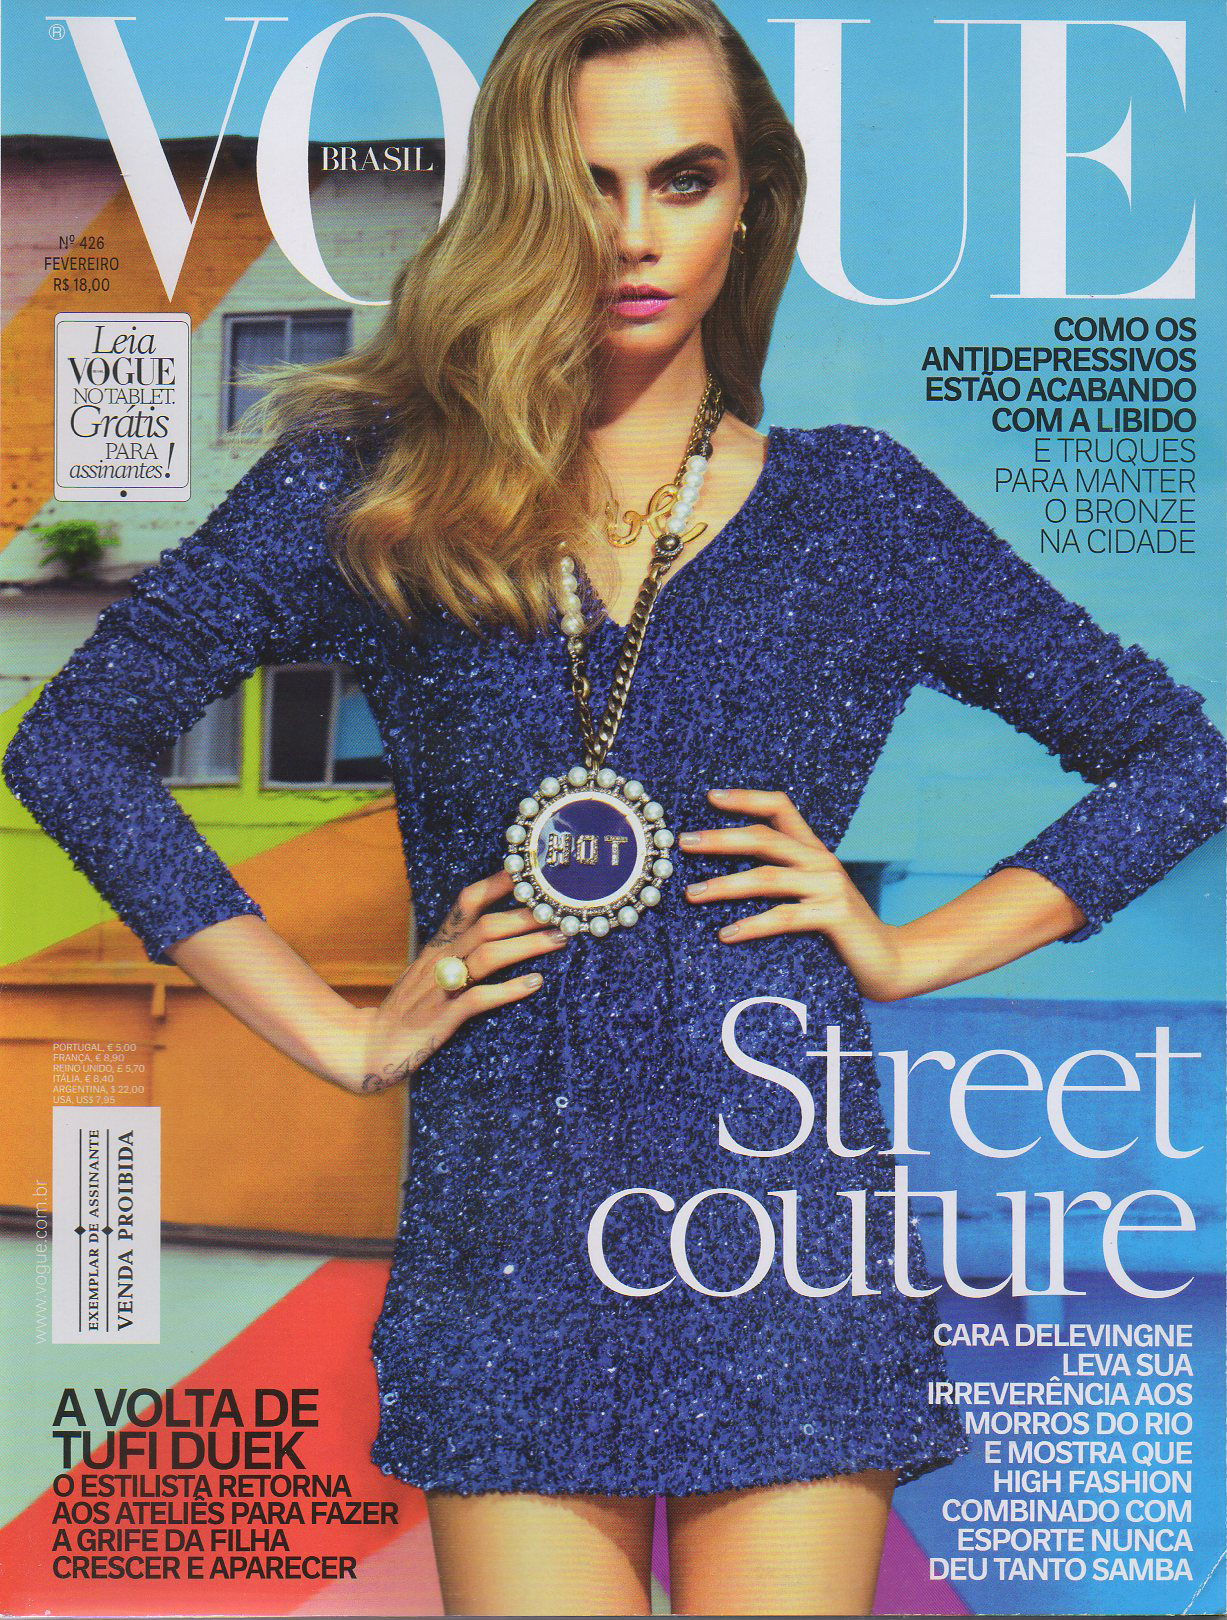 2014-02 VOGUE BR - COVER.jpg